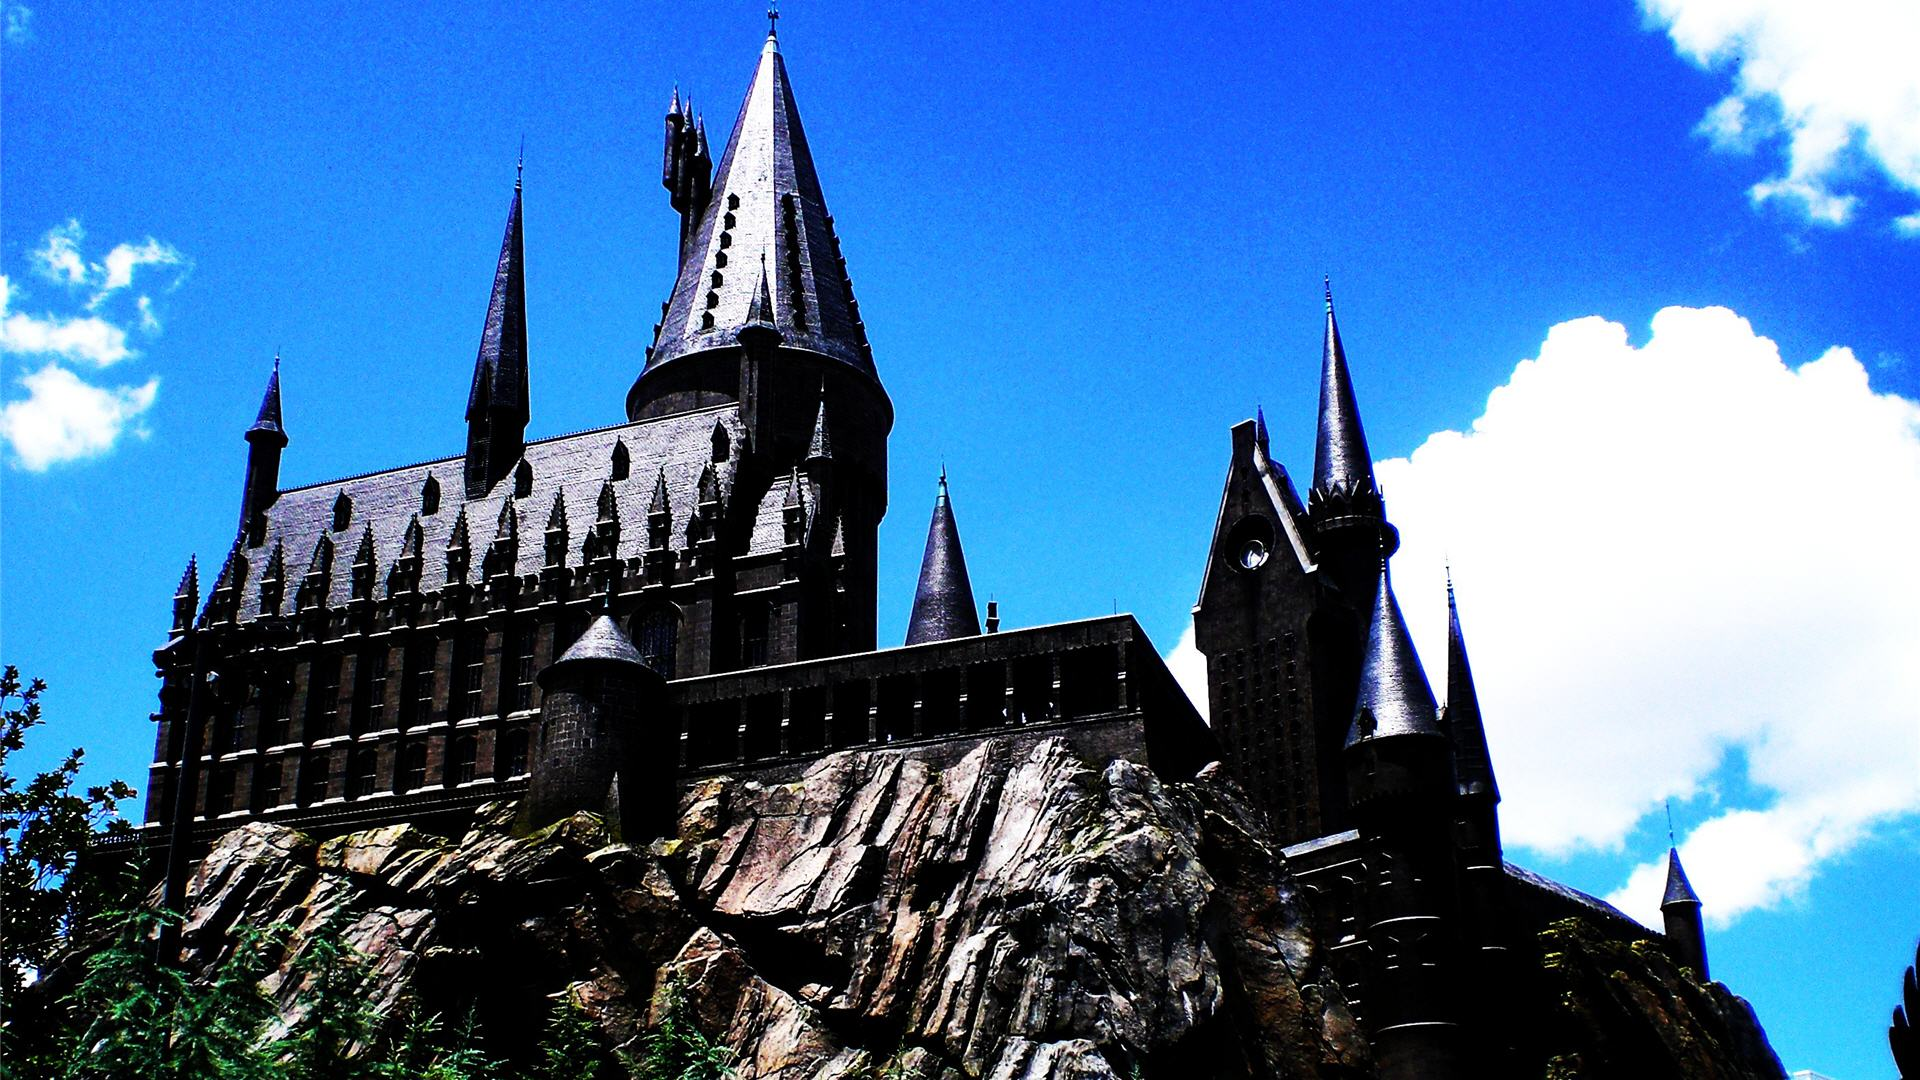 Hogwarts Castle Wallpapers 1920x1080